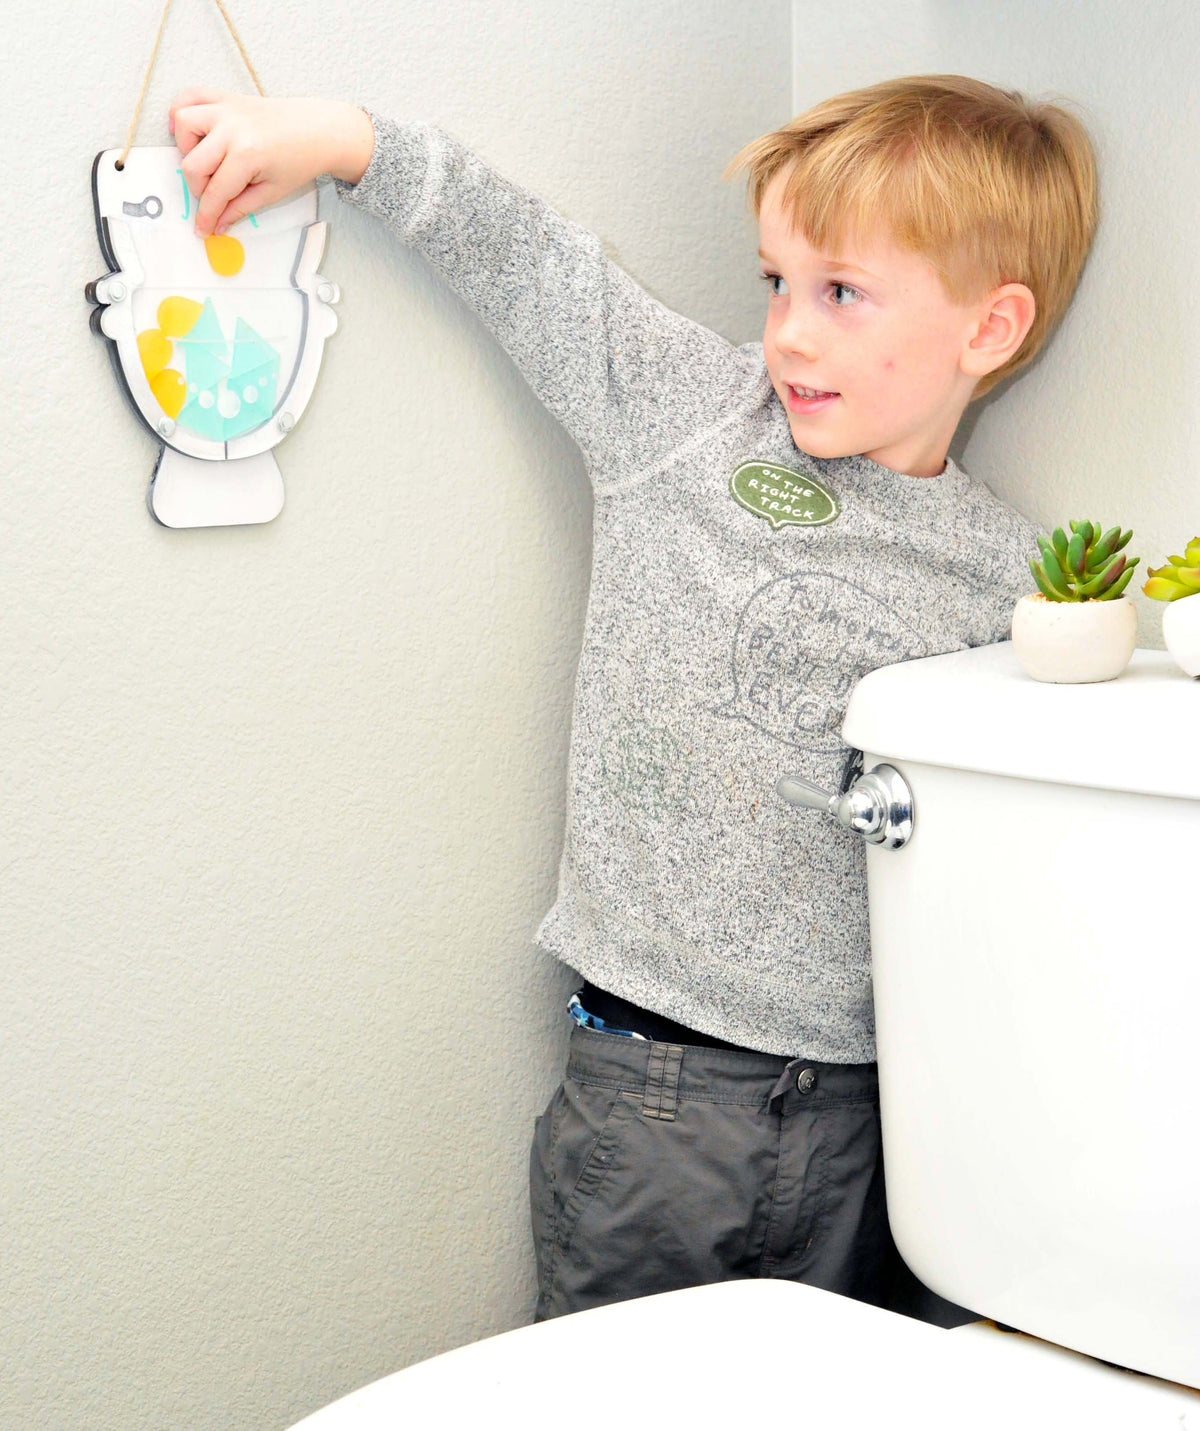 Token Reward Chart for Potty Training- Incentive Chart - Makes Toilet Training Fun!  Autism - Toddlers -Boys - Girls - Personalized